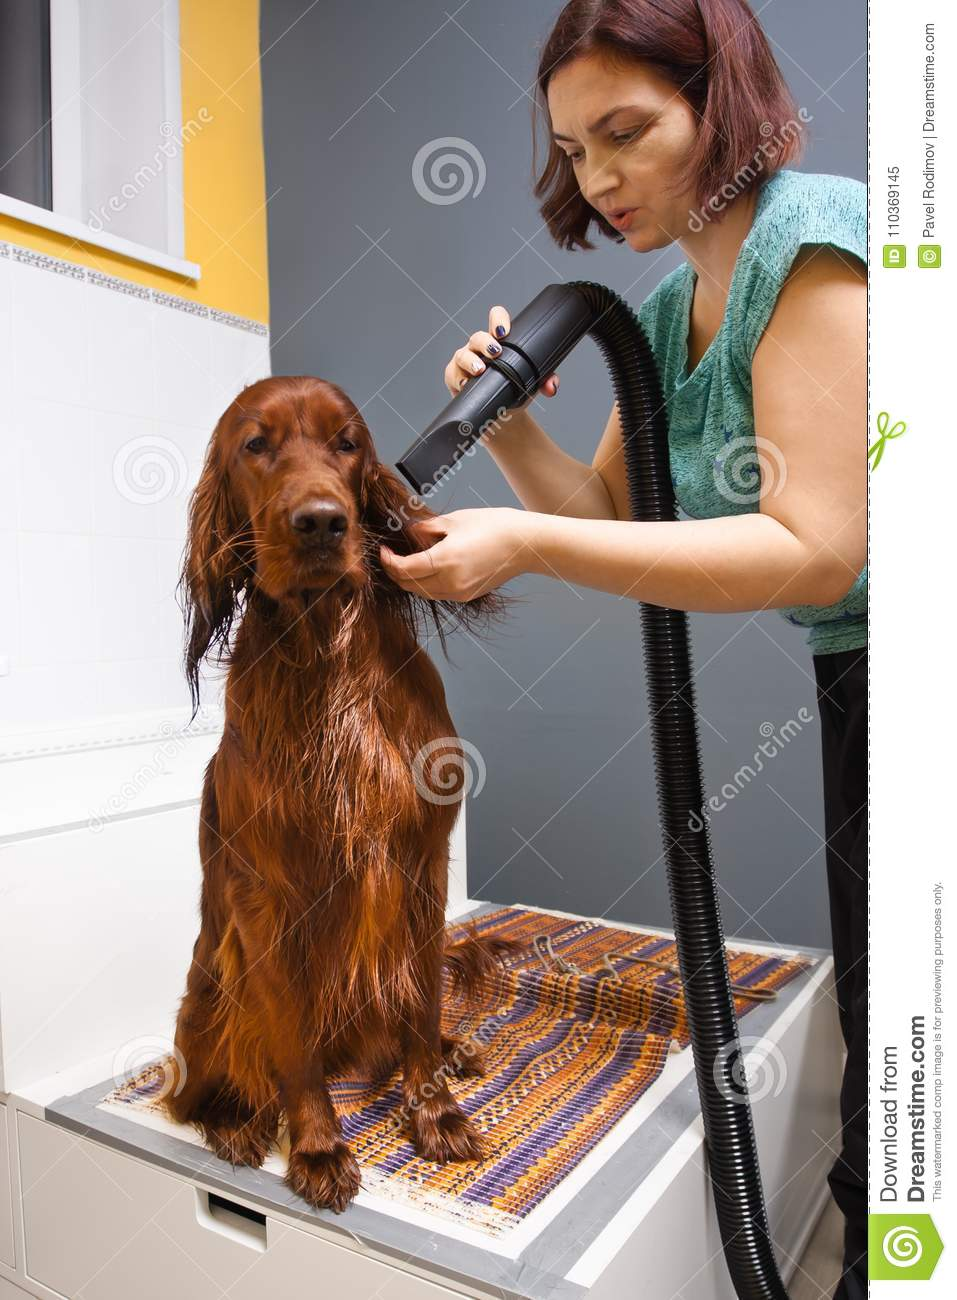 Groomer drying hair of dog with hair dryer